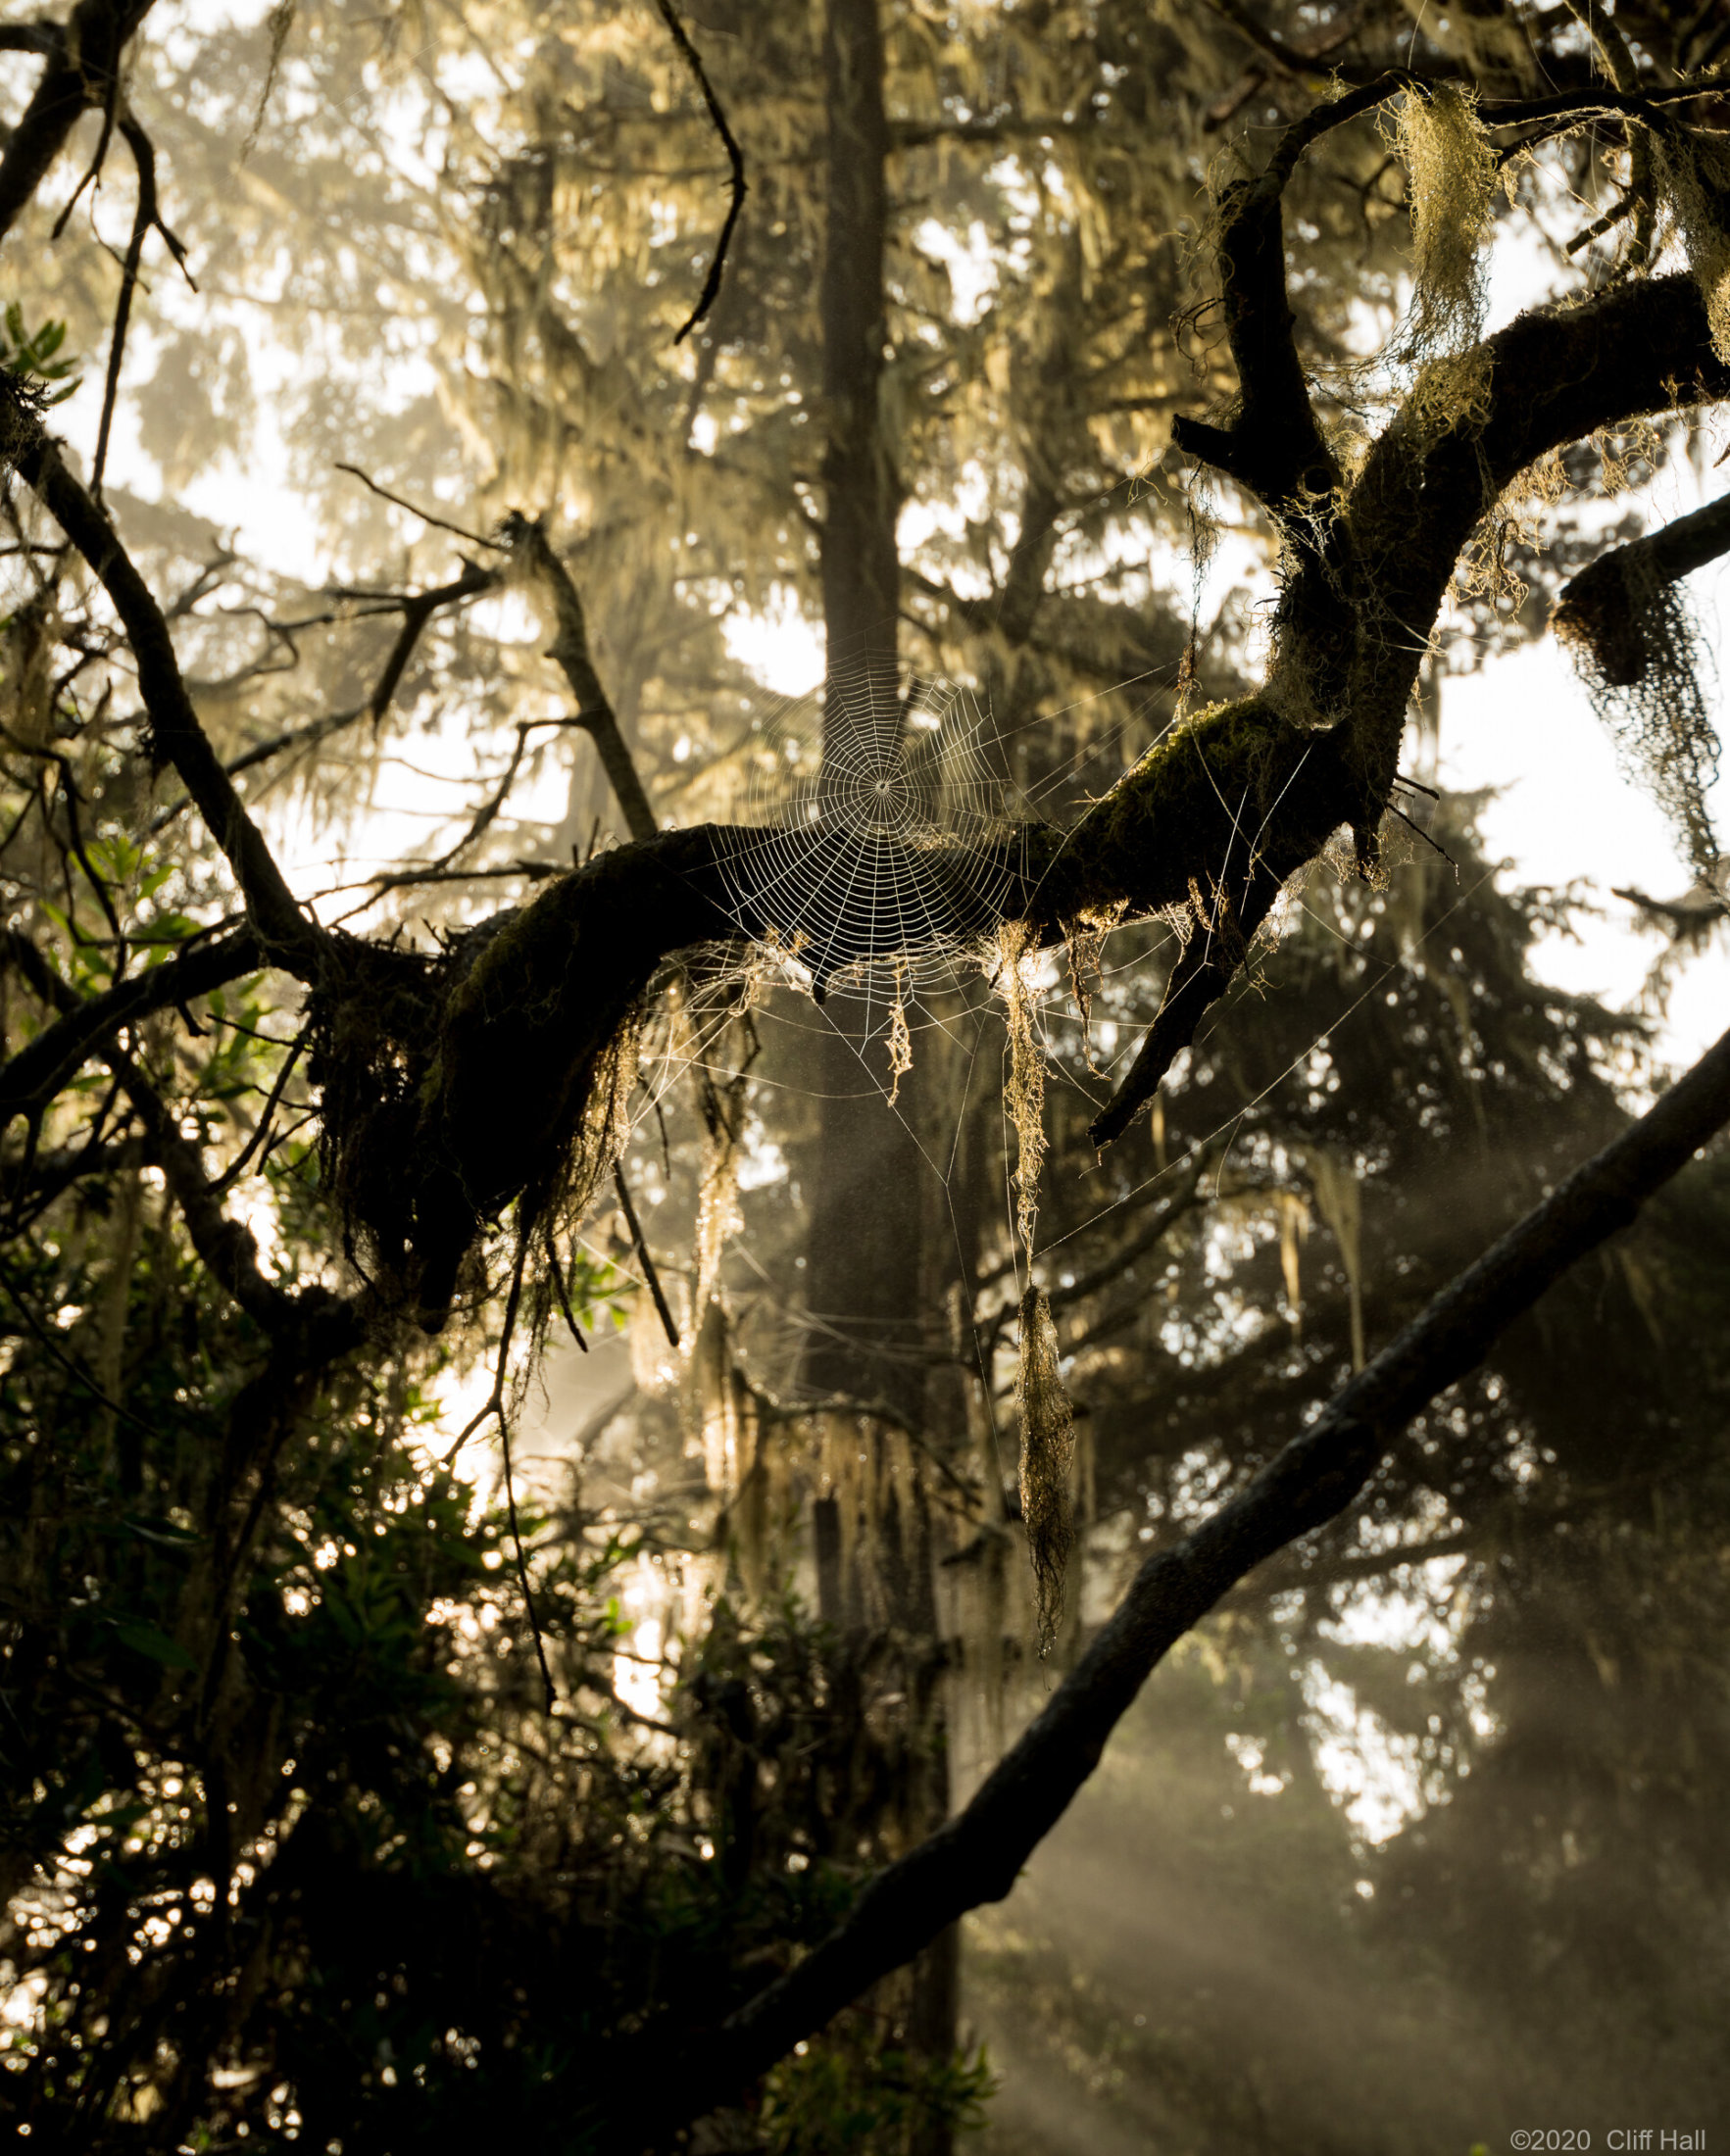 Web in the mist